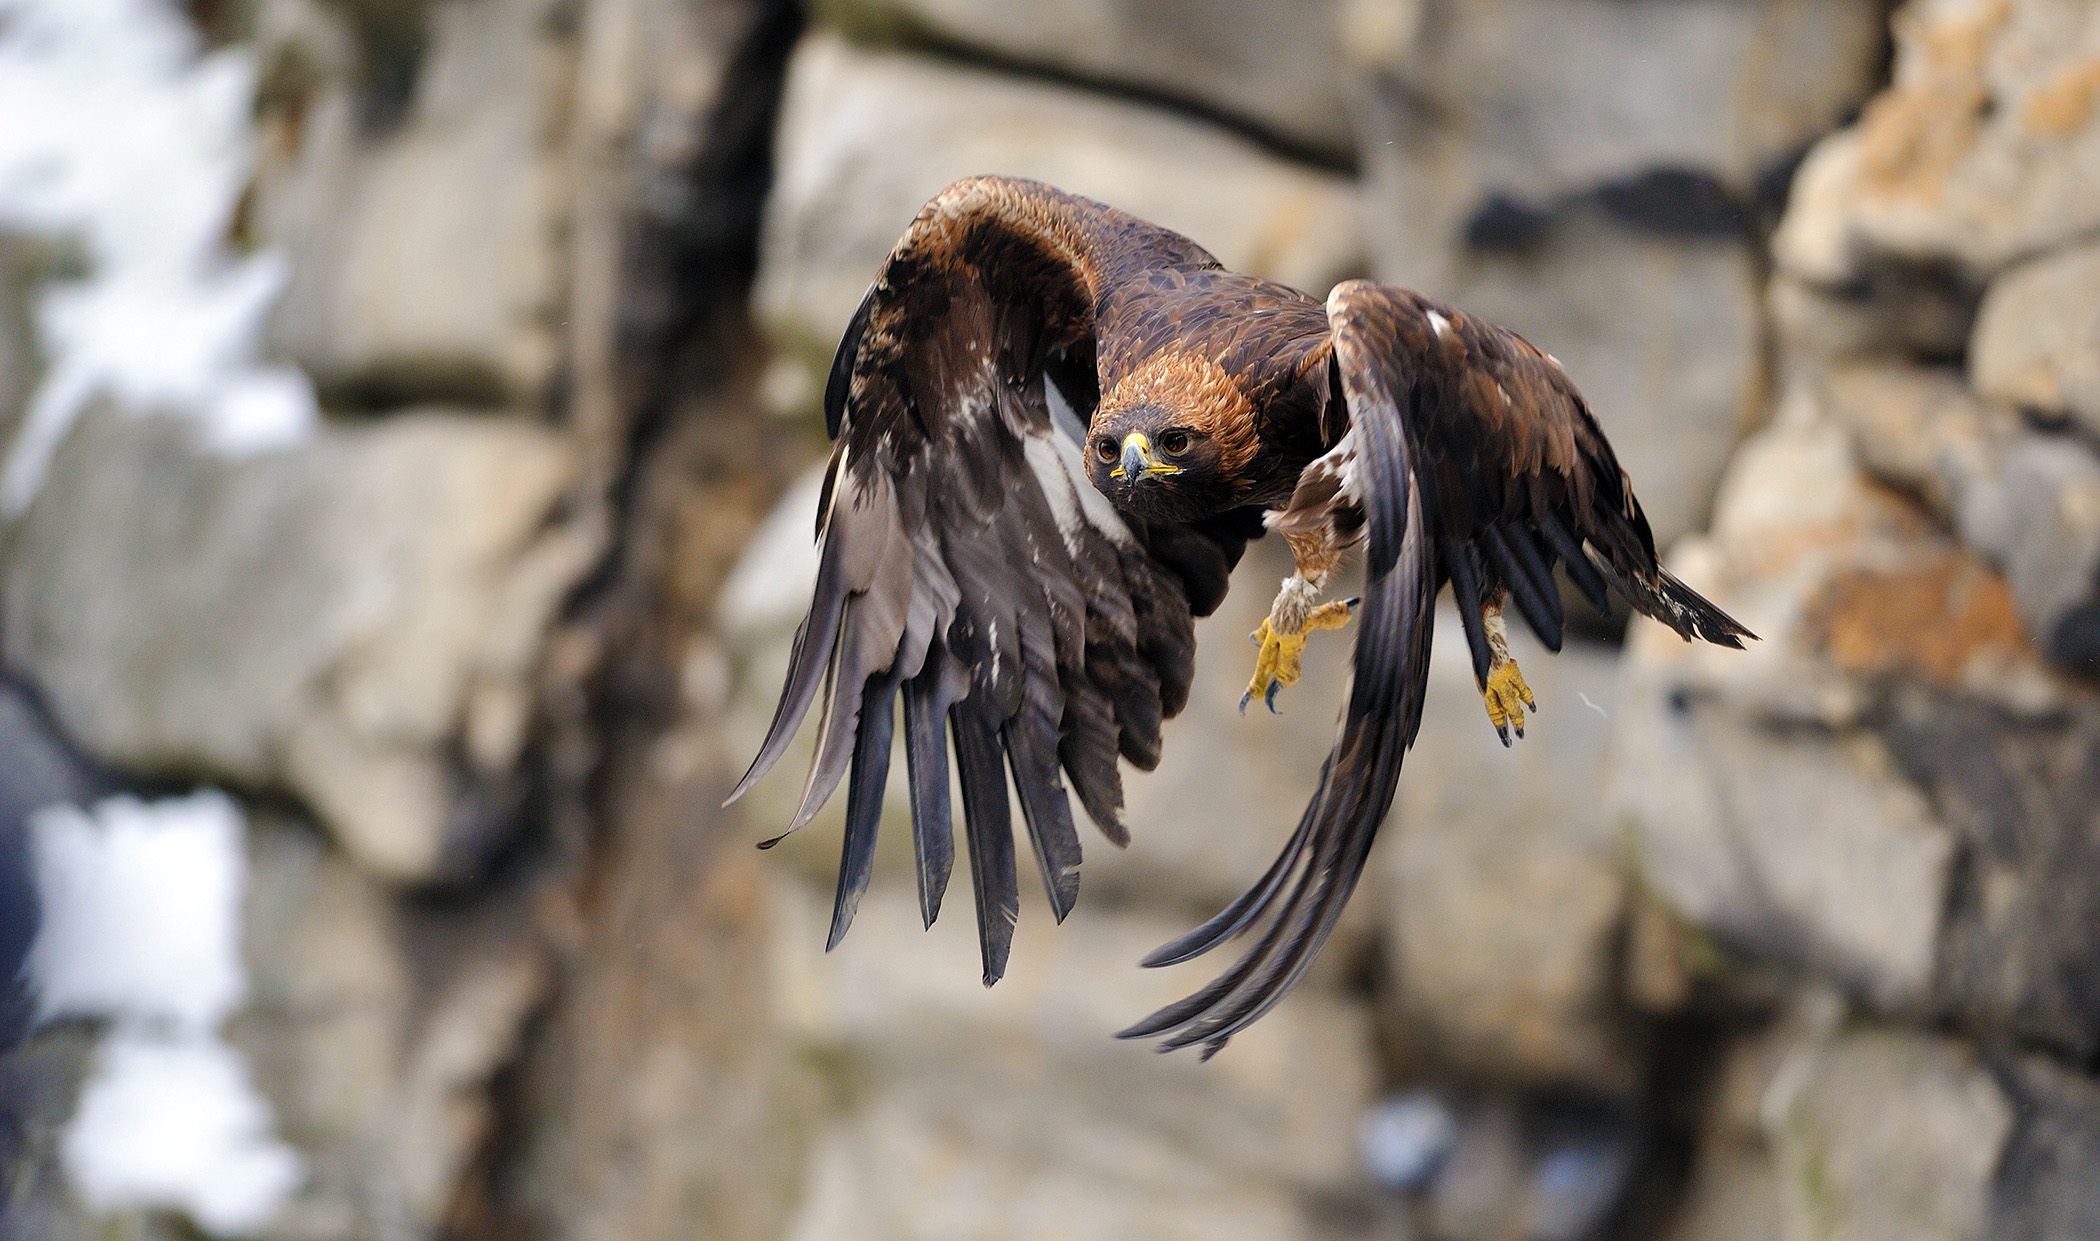 Raptors at risk – raising awareness about endangered birds of prey